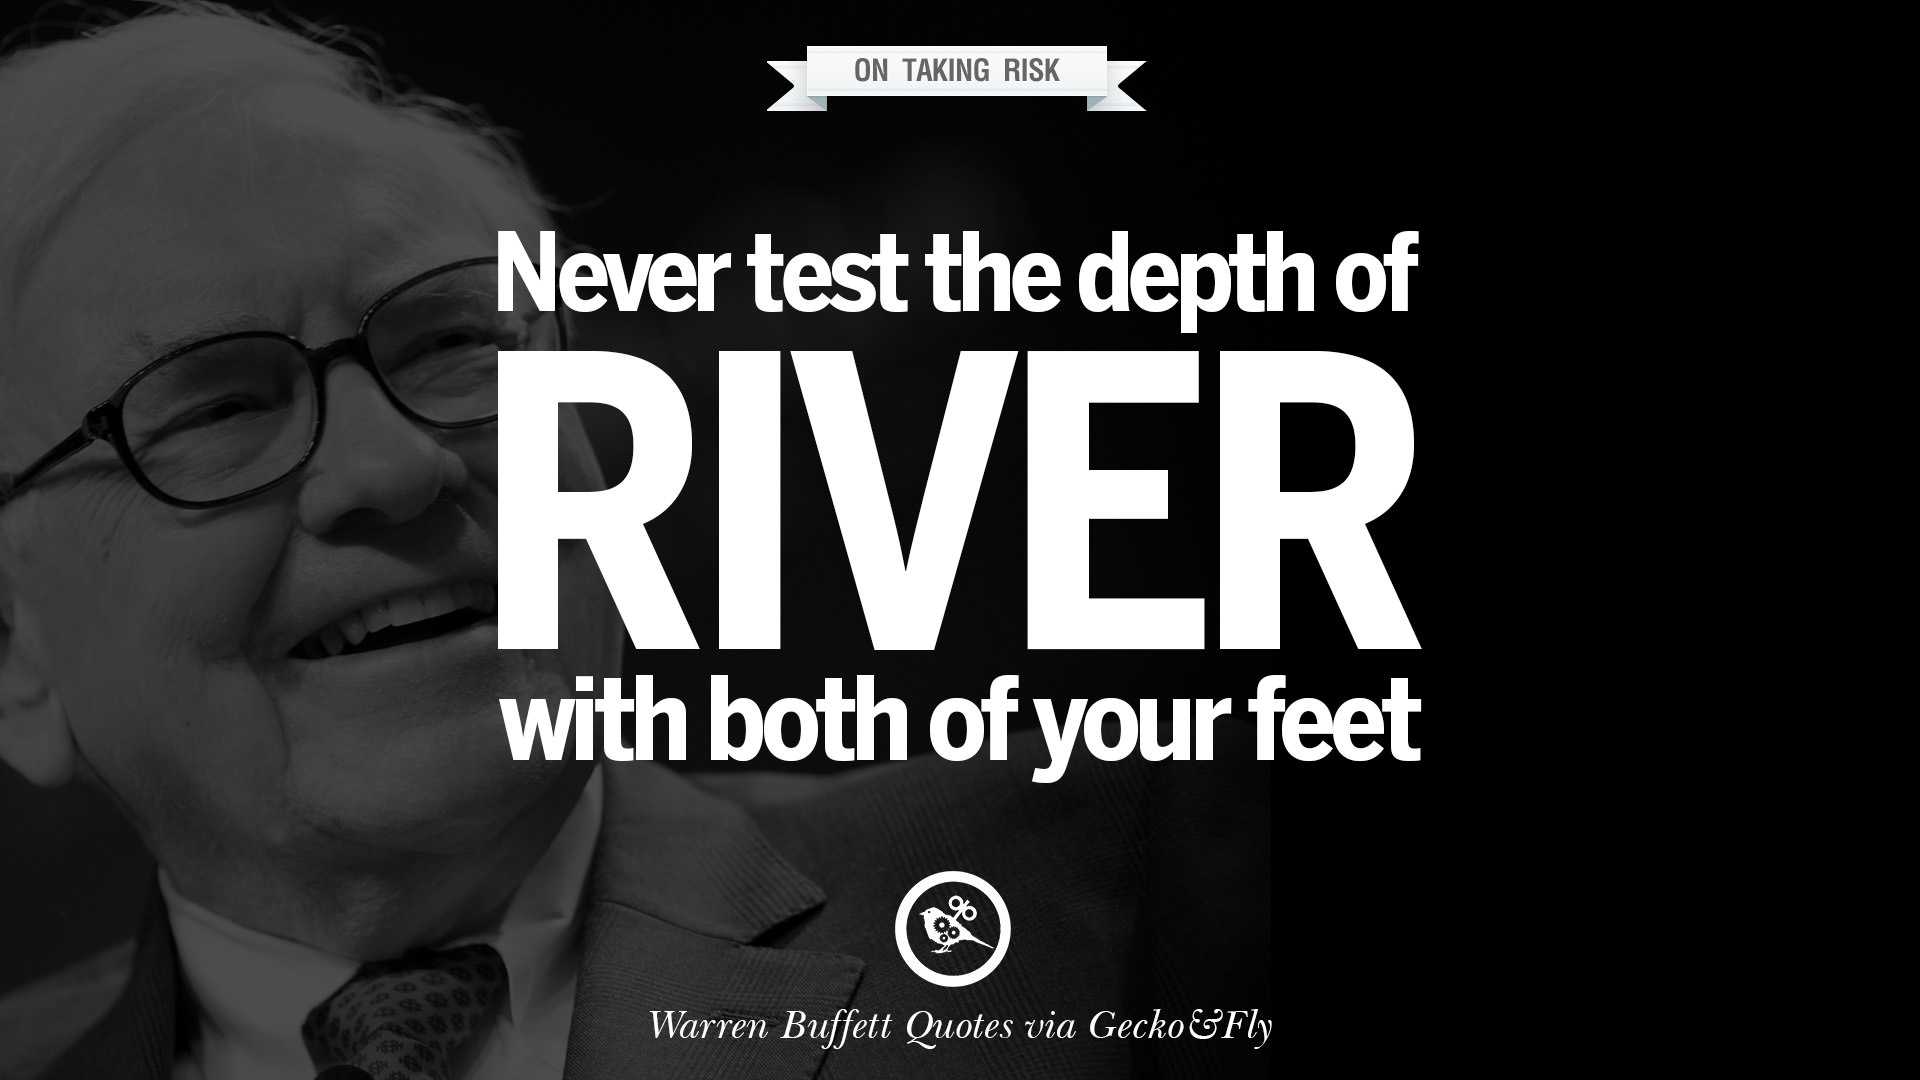 Buddha Quotes With Wallpaper 6 Excellent Quotes By Warren Buffet On Investment And